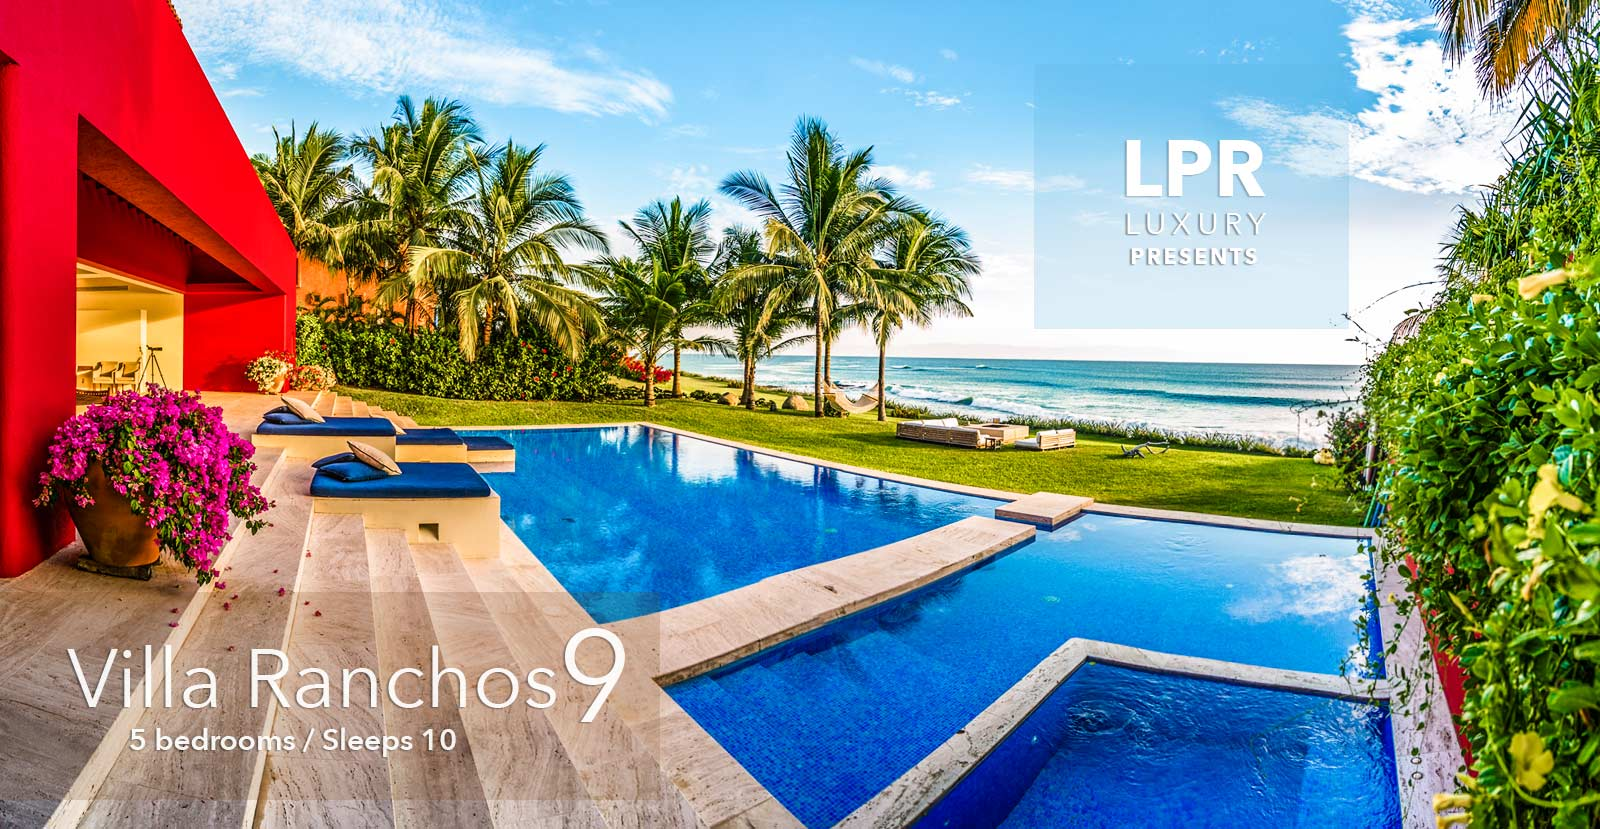 Villa Ranchos 9 - Ultra Luxury villa for sale at the Punta Mita Resort - Puerto Vallarta luxury real estate - Mexico